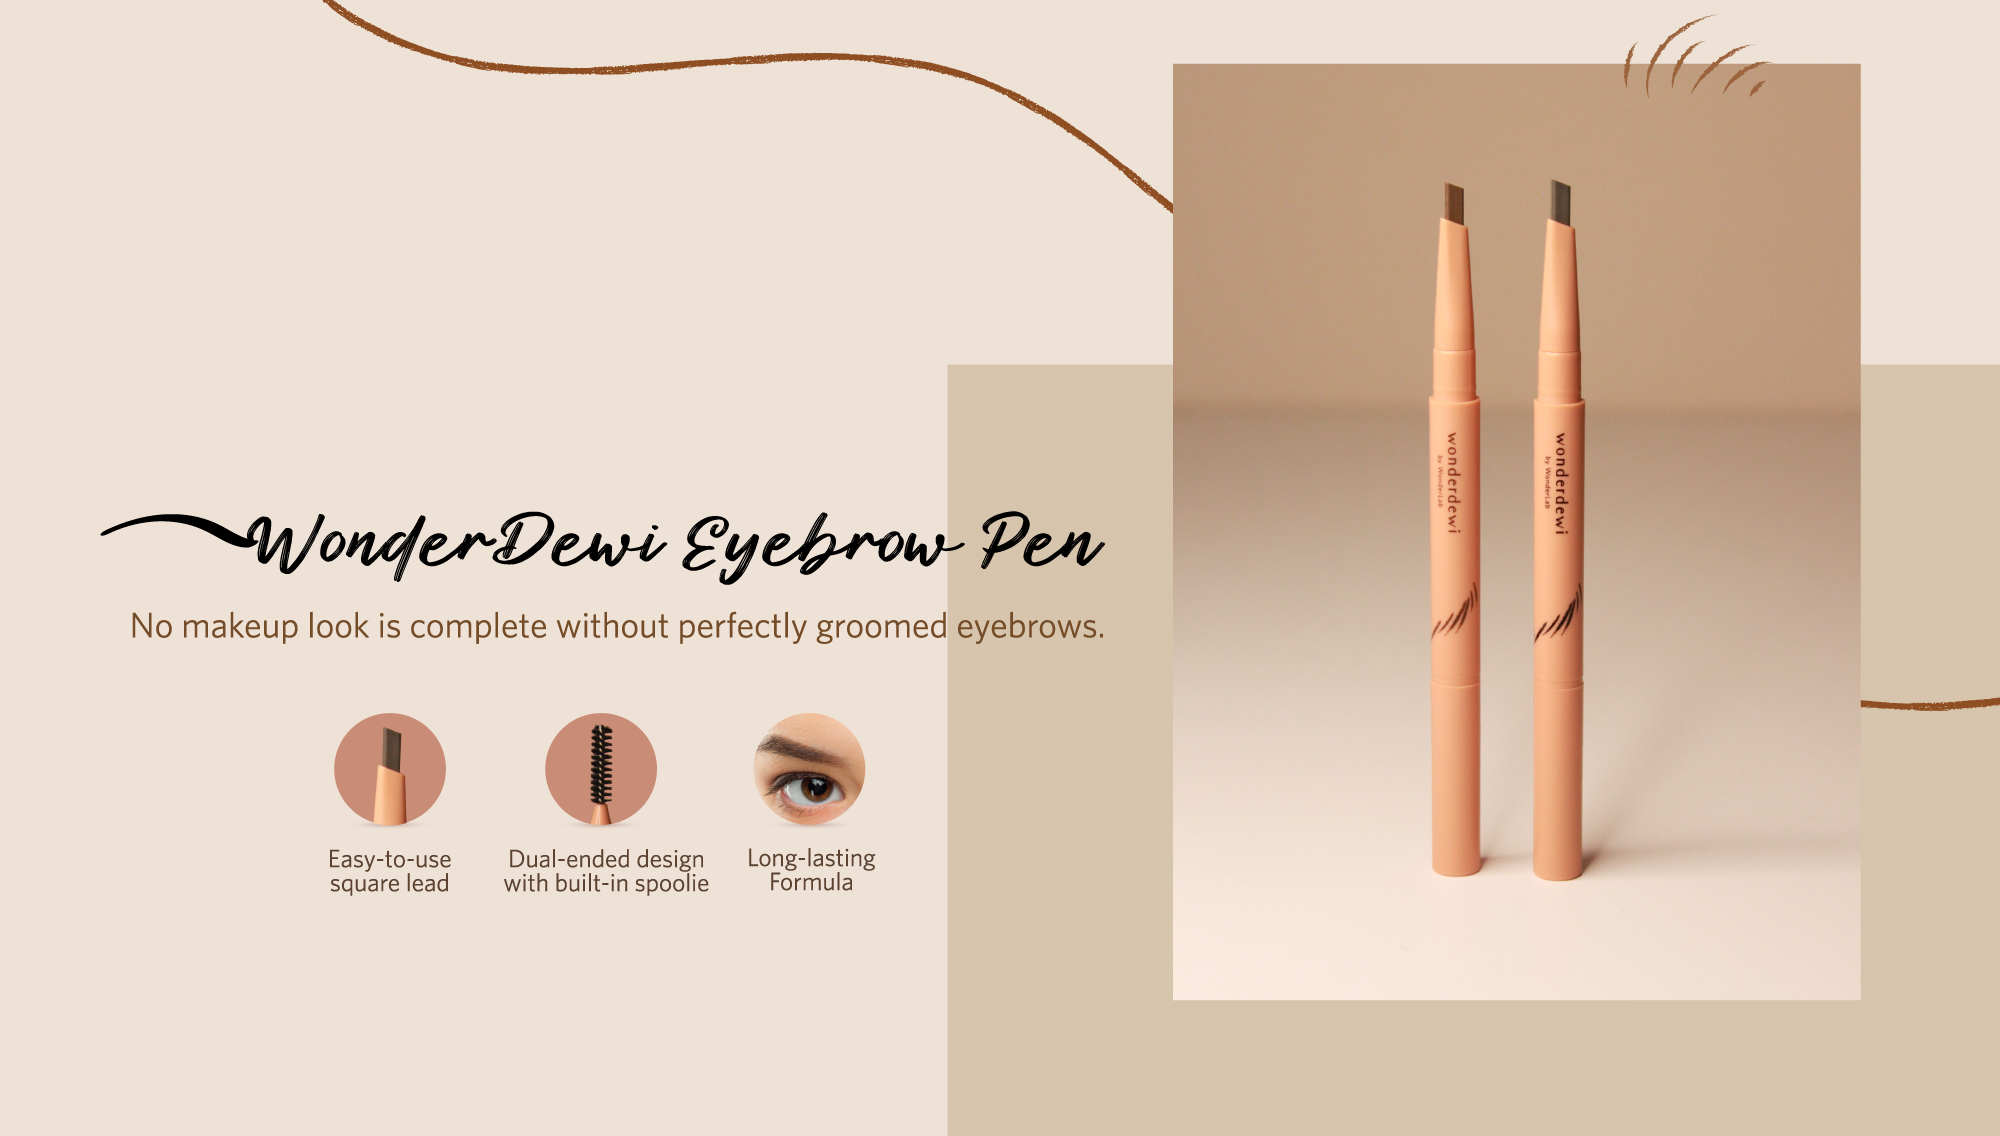 WD Eyebrow pencil page banner